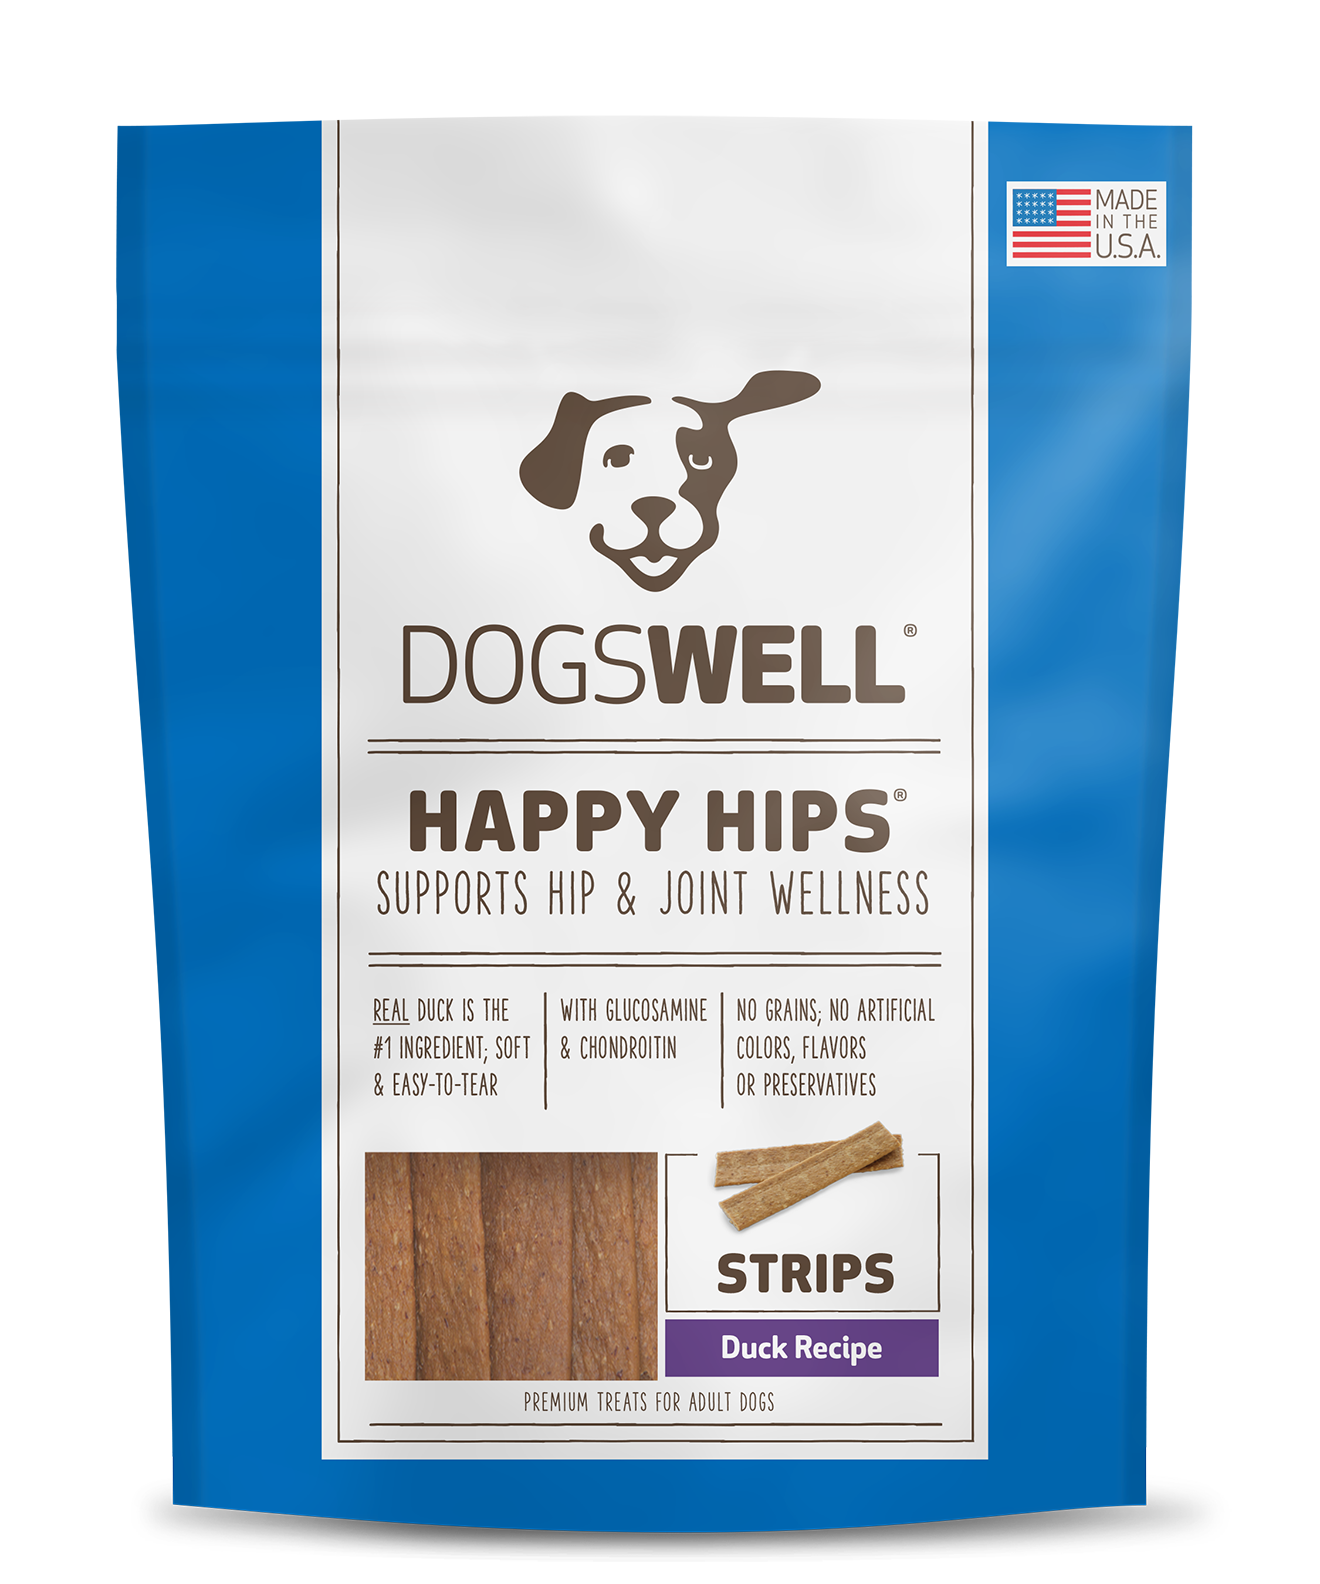 Dogswell Dog Food Where To Buy